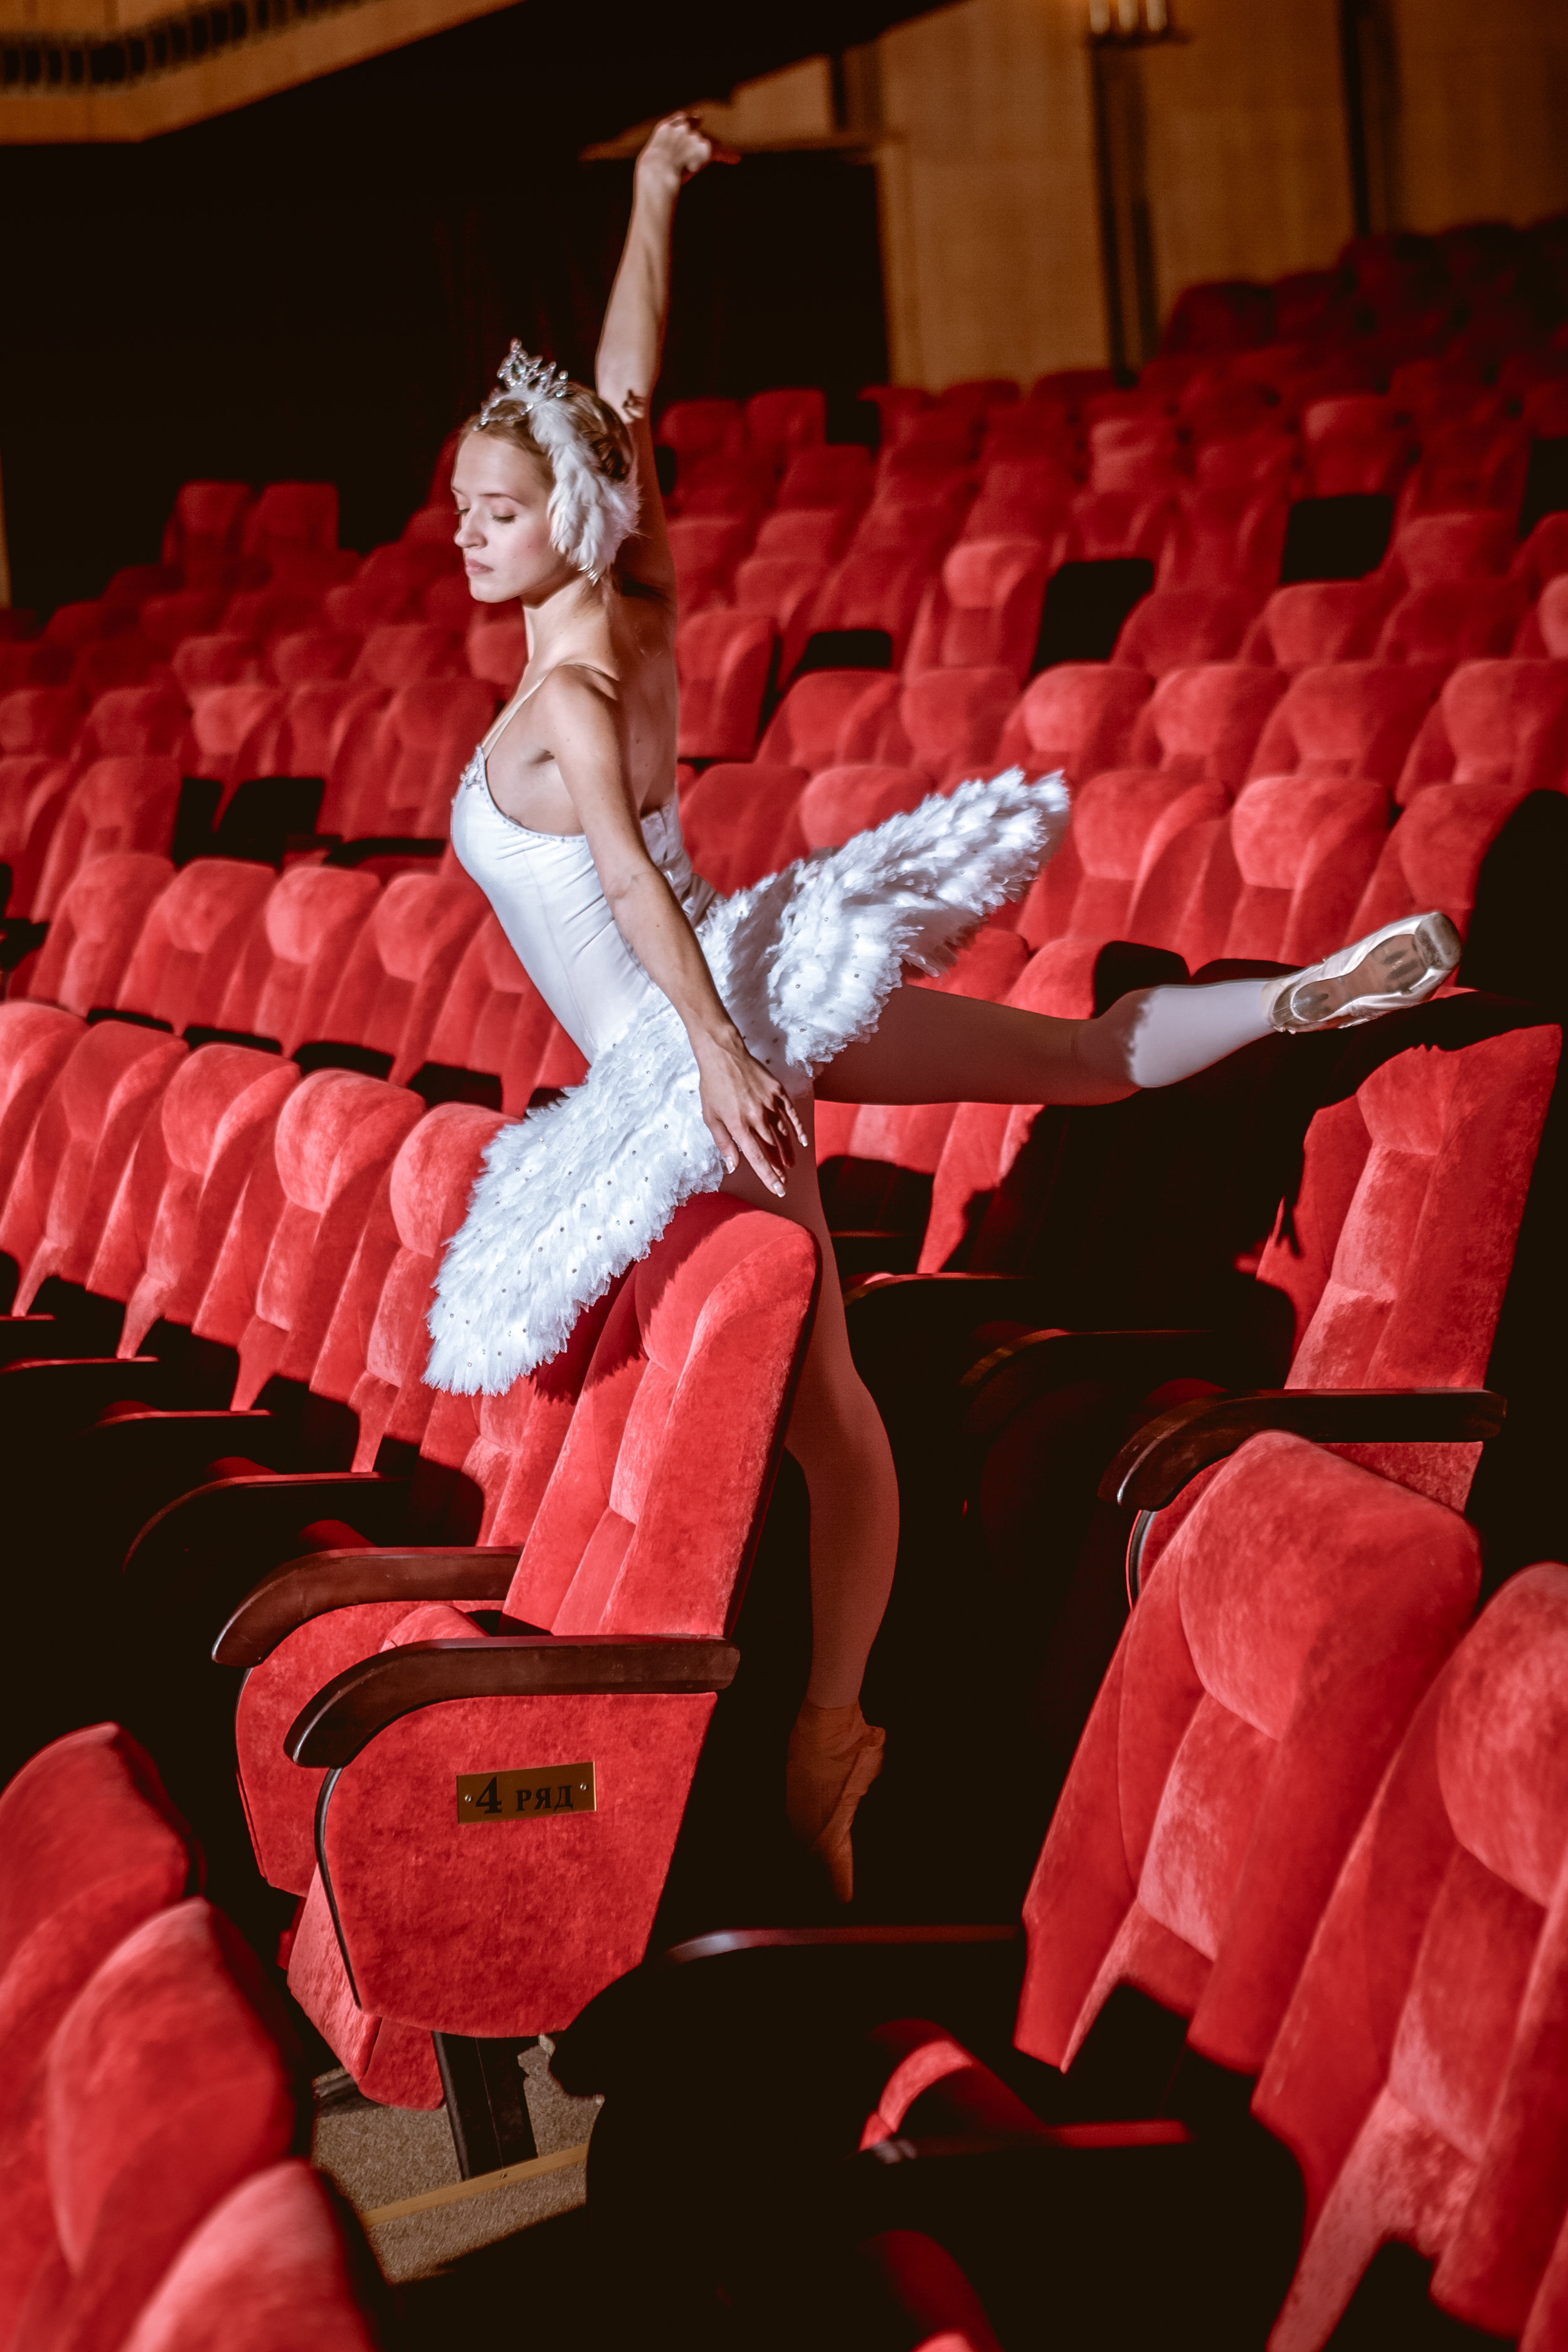 ballerina-sitting-in-the-empty-auditorium-theater-PQM48JU.JPG